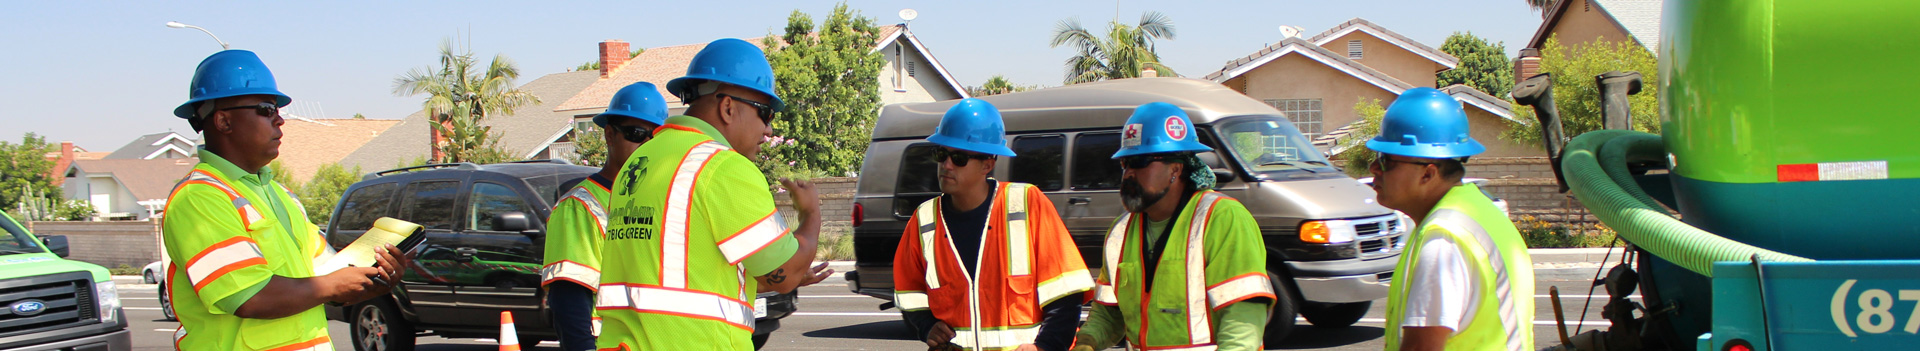 cleaning and waste management